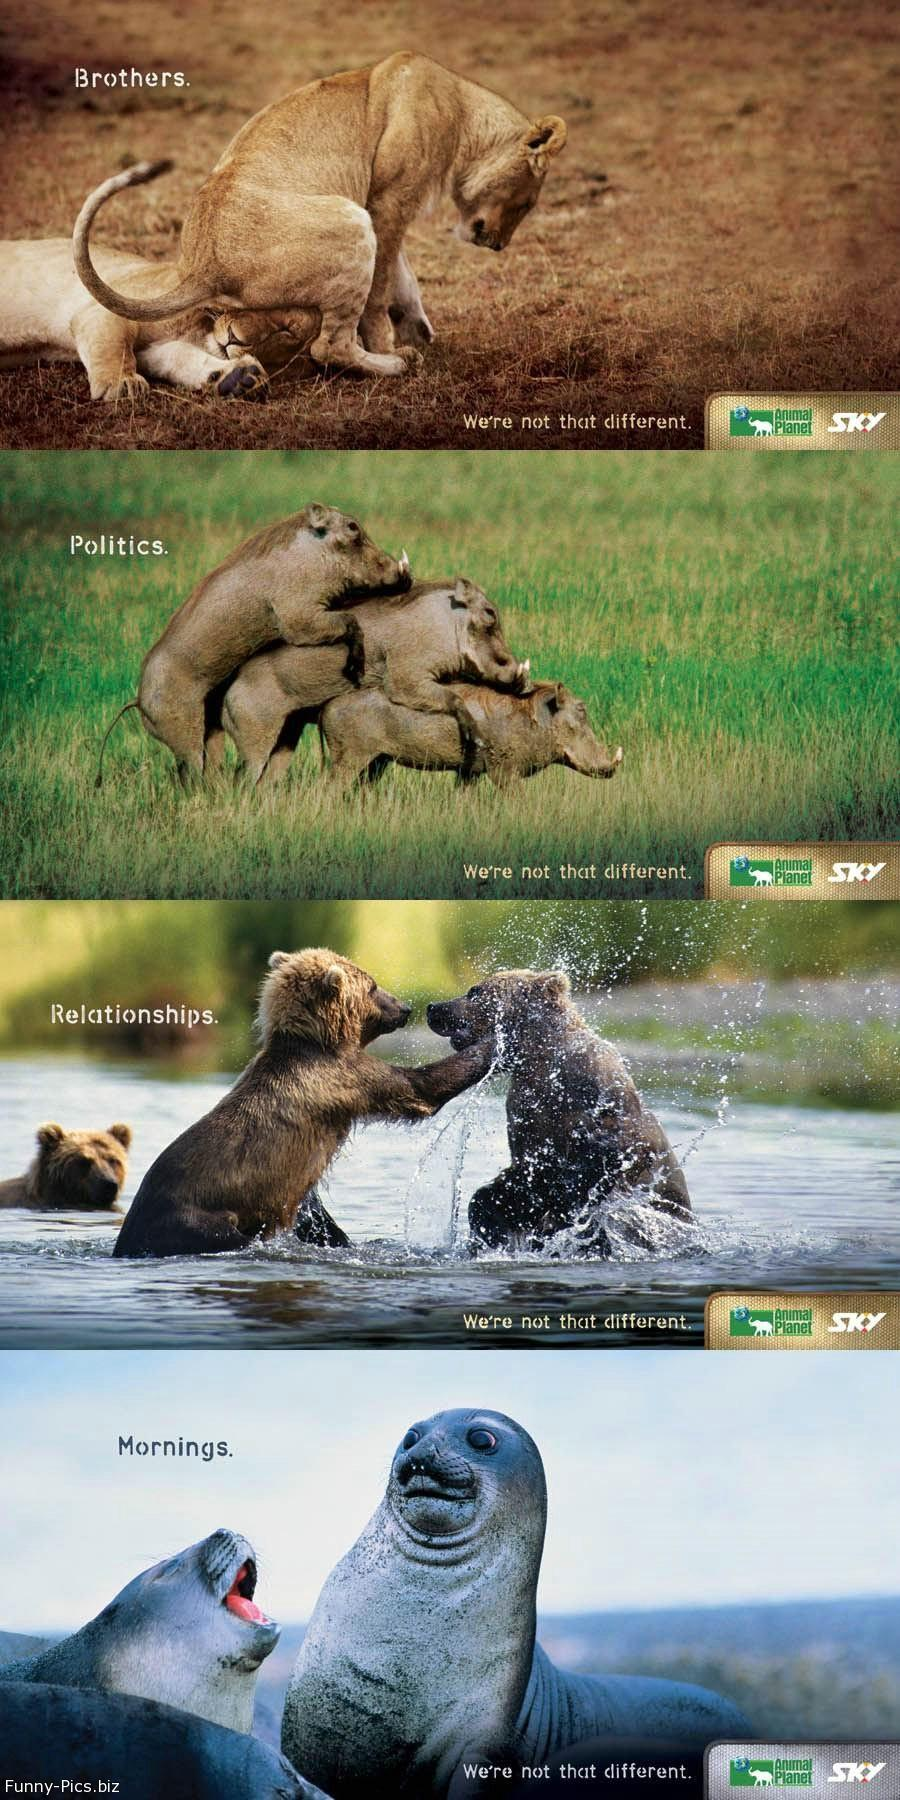 Funny Ads: We're not that different